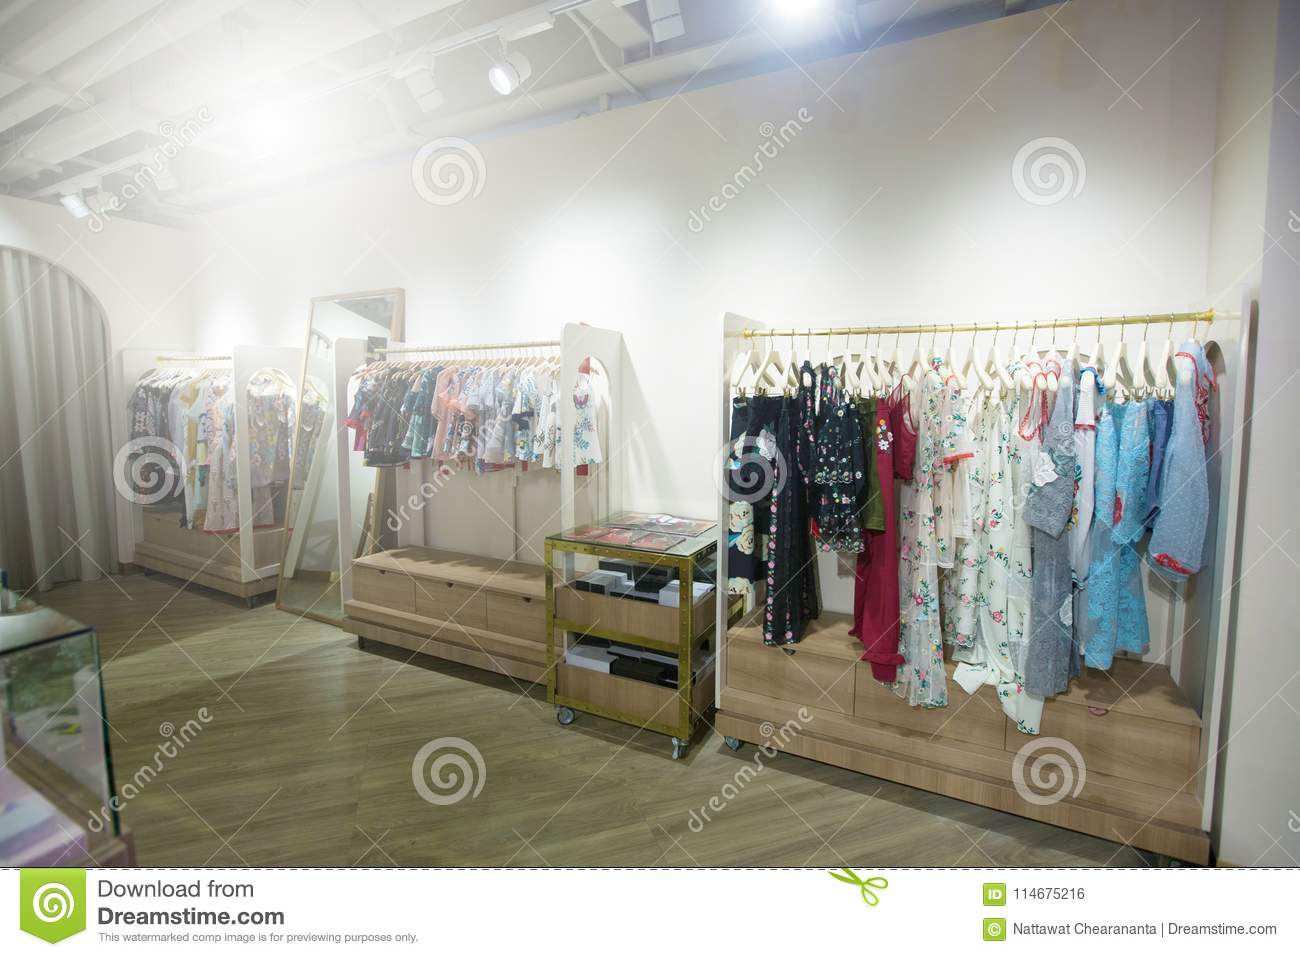 Fashion Design Clothes On Display Rack In Retail Shop Stock Photo Image Of Basic Female 114675216